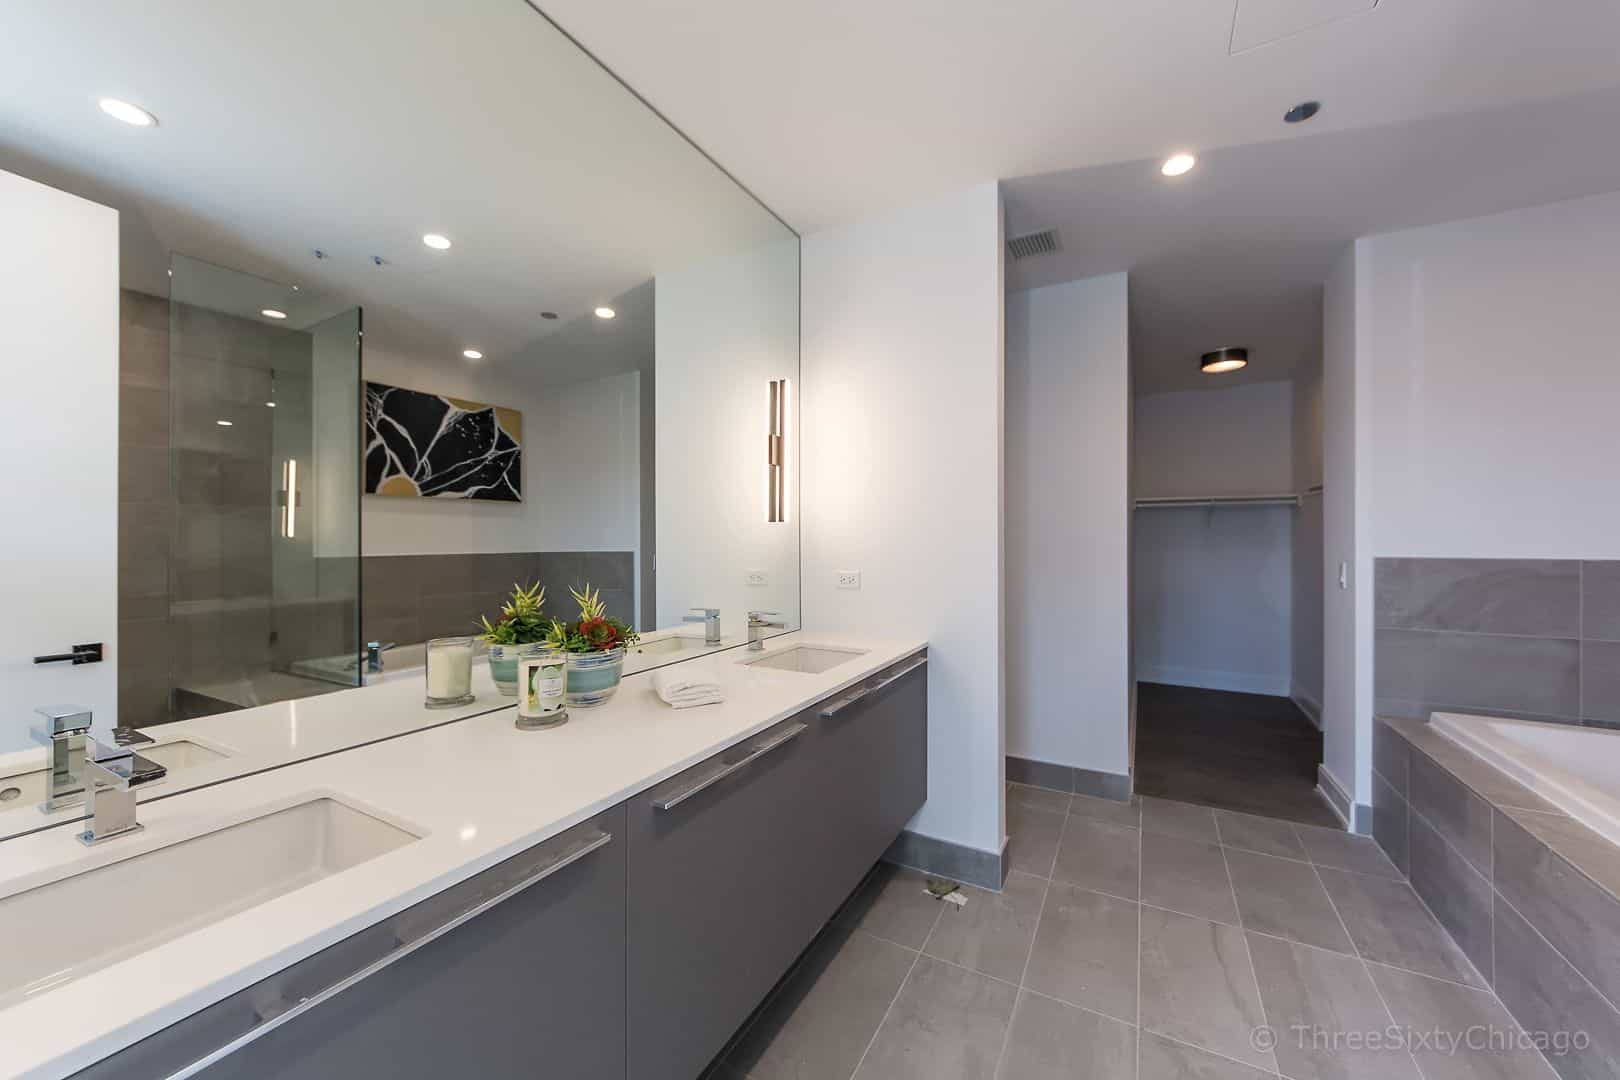 Owners suite bath in unit 809 - West Loop Luxury Condo at Illume, 111 S Peoria, Chicago IL 60607